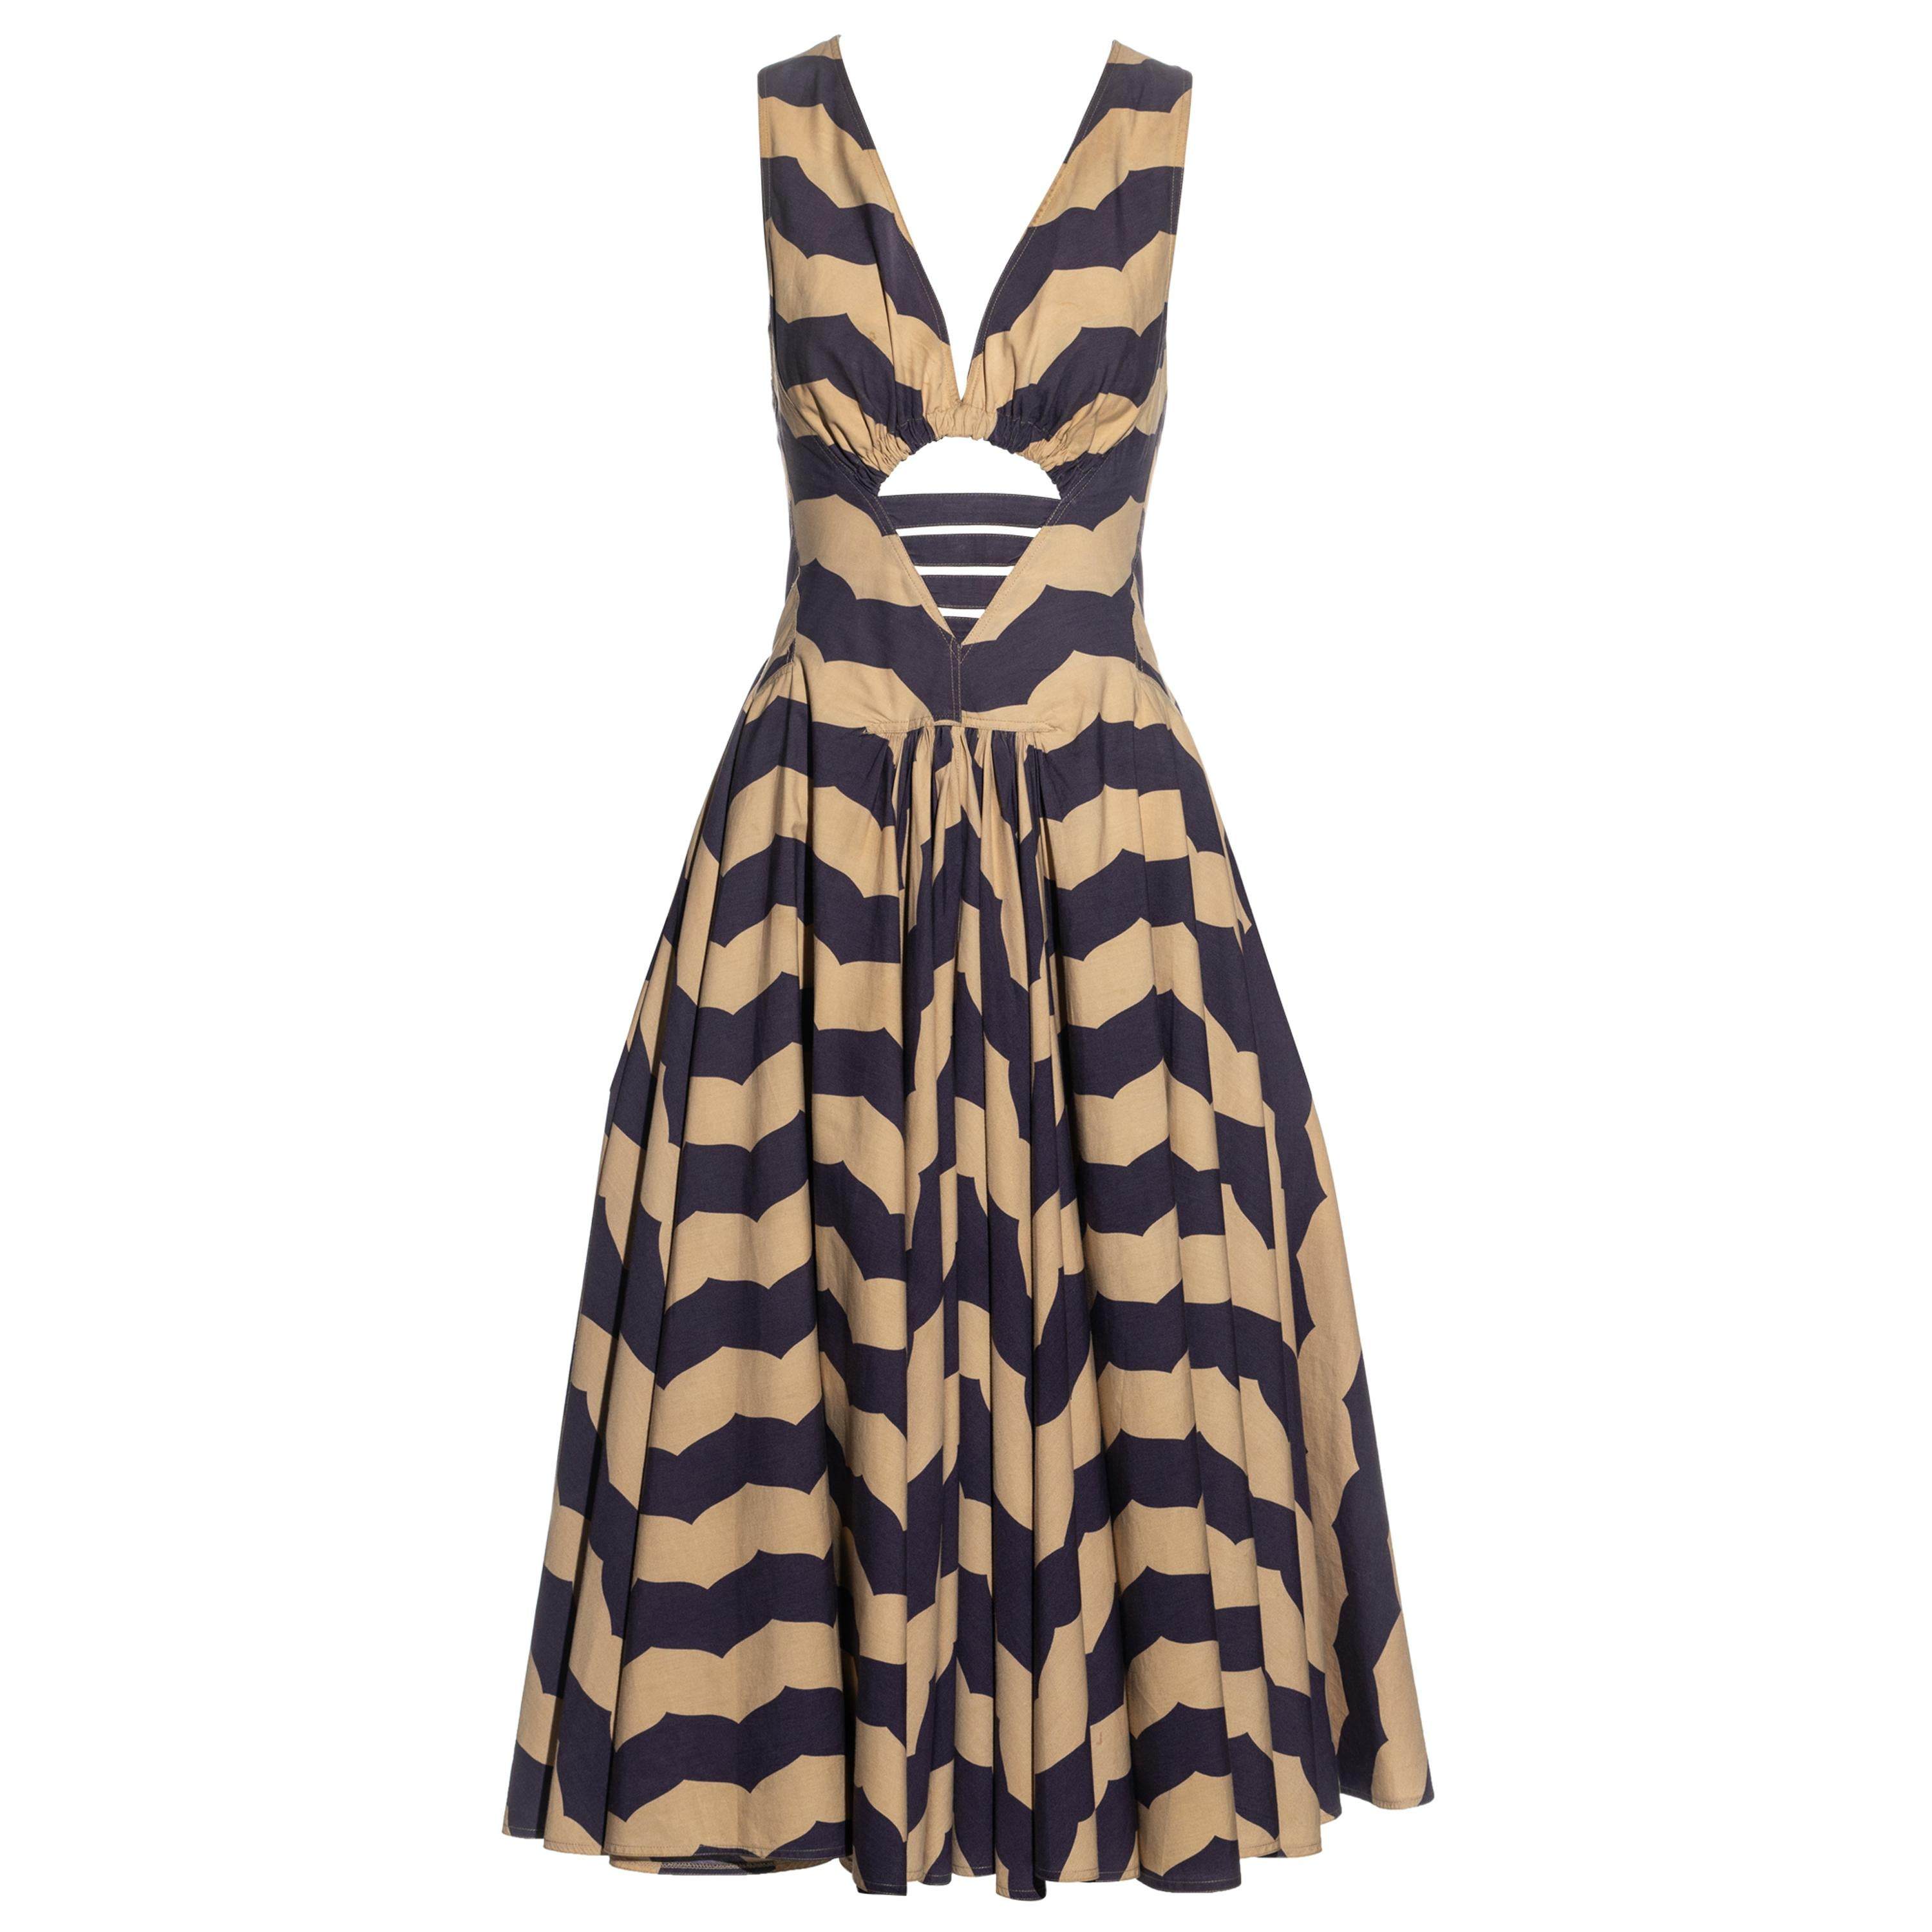 Azzedine Alaia purple and beige striped cotton dress with cut out, ss 1990